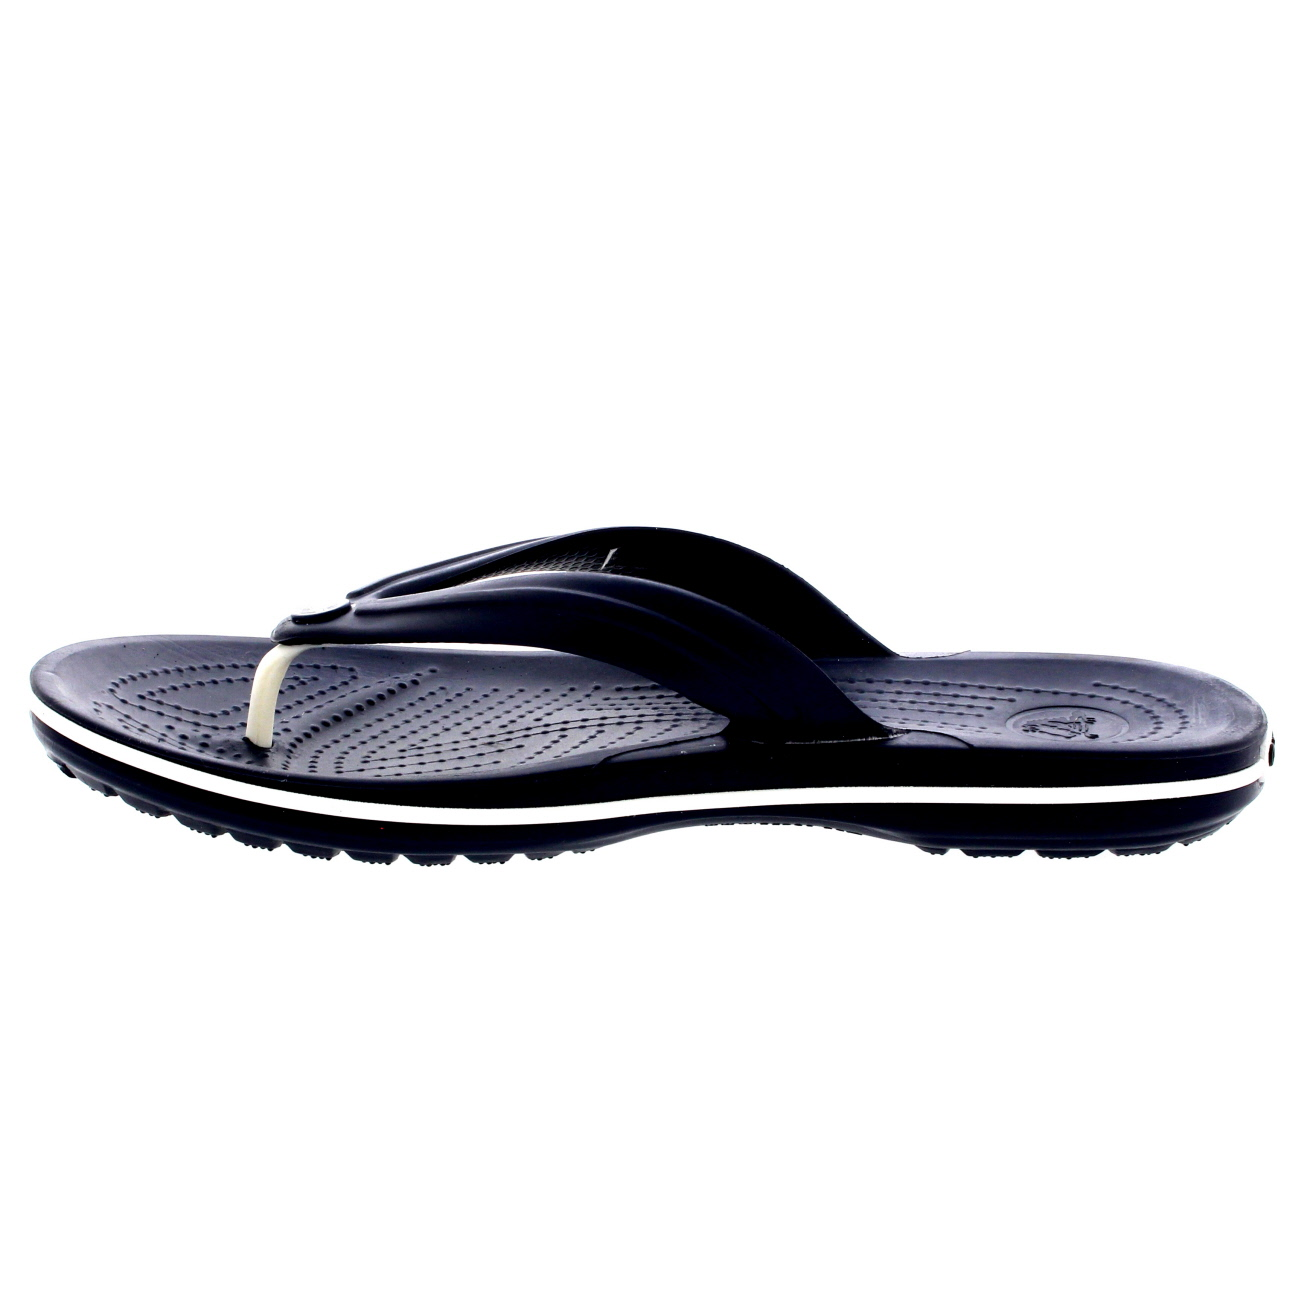 unisex herren damen crocs crocband flip schl pfen pantoffel flip flops eu 36 53 ebay. Black Bedroom Furniture Sets. Home Design Ideas